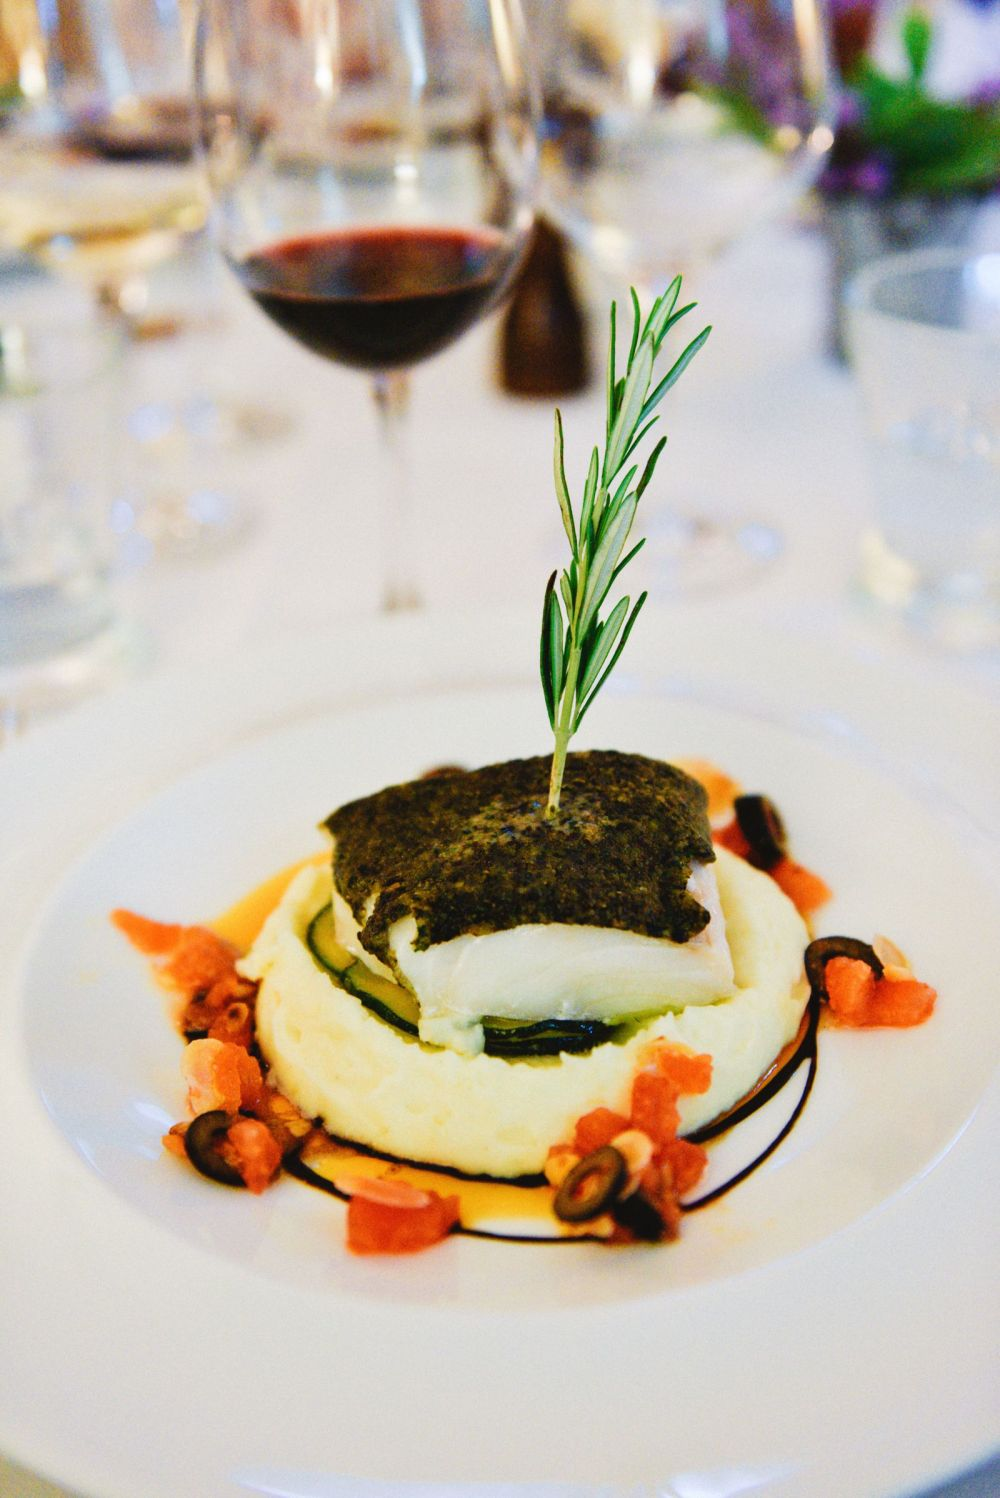 Truffle-Hunting, Chateau-Living And Wine-Tasting In the French Dordogne Valley (60)